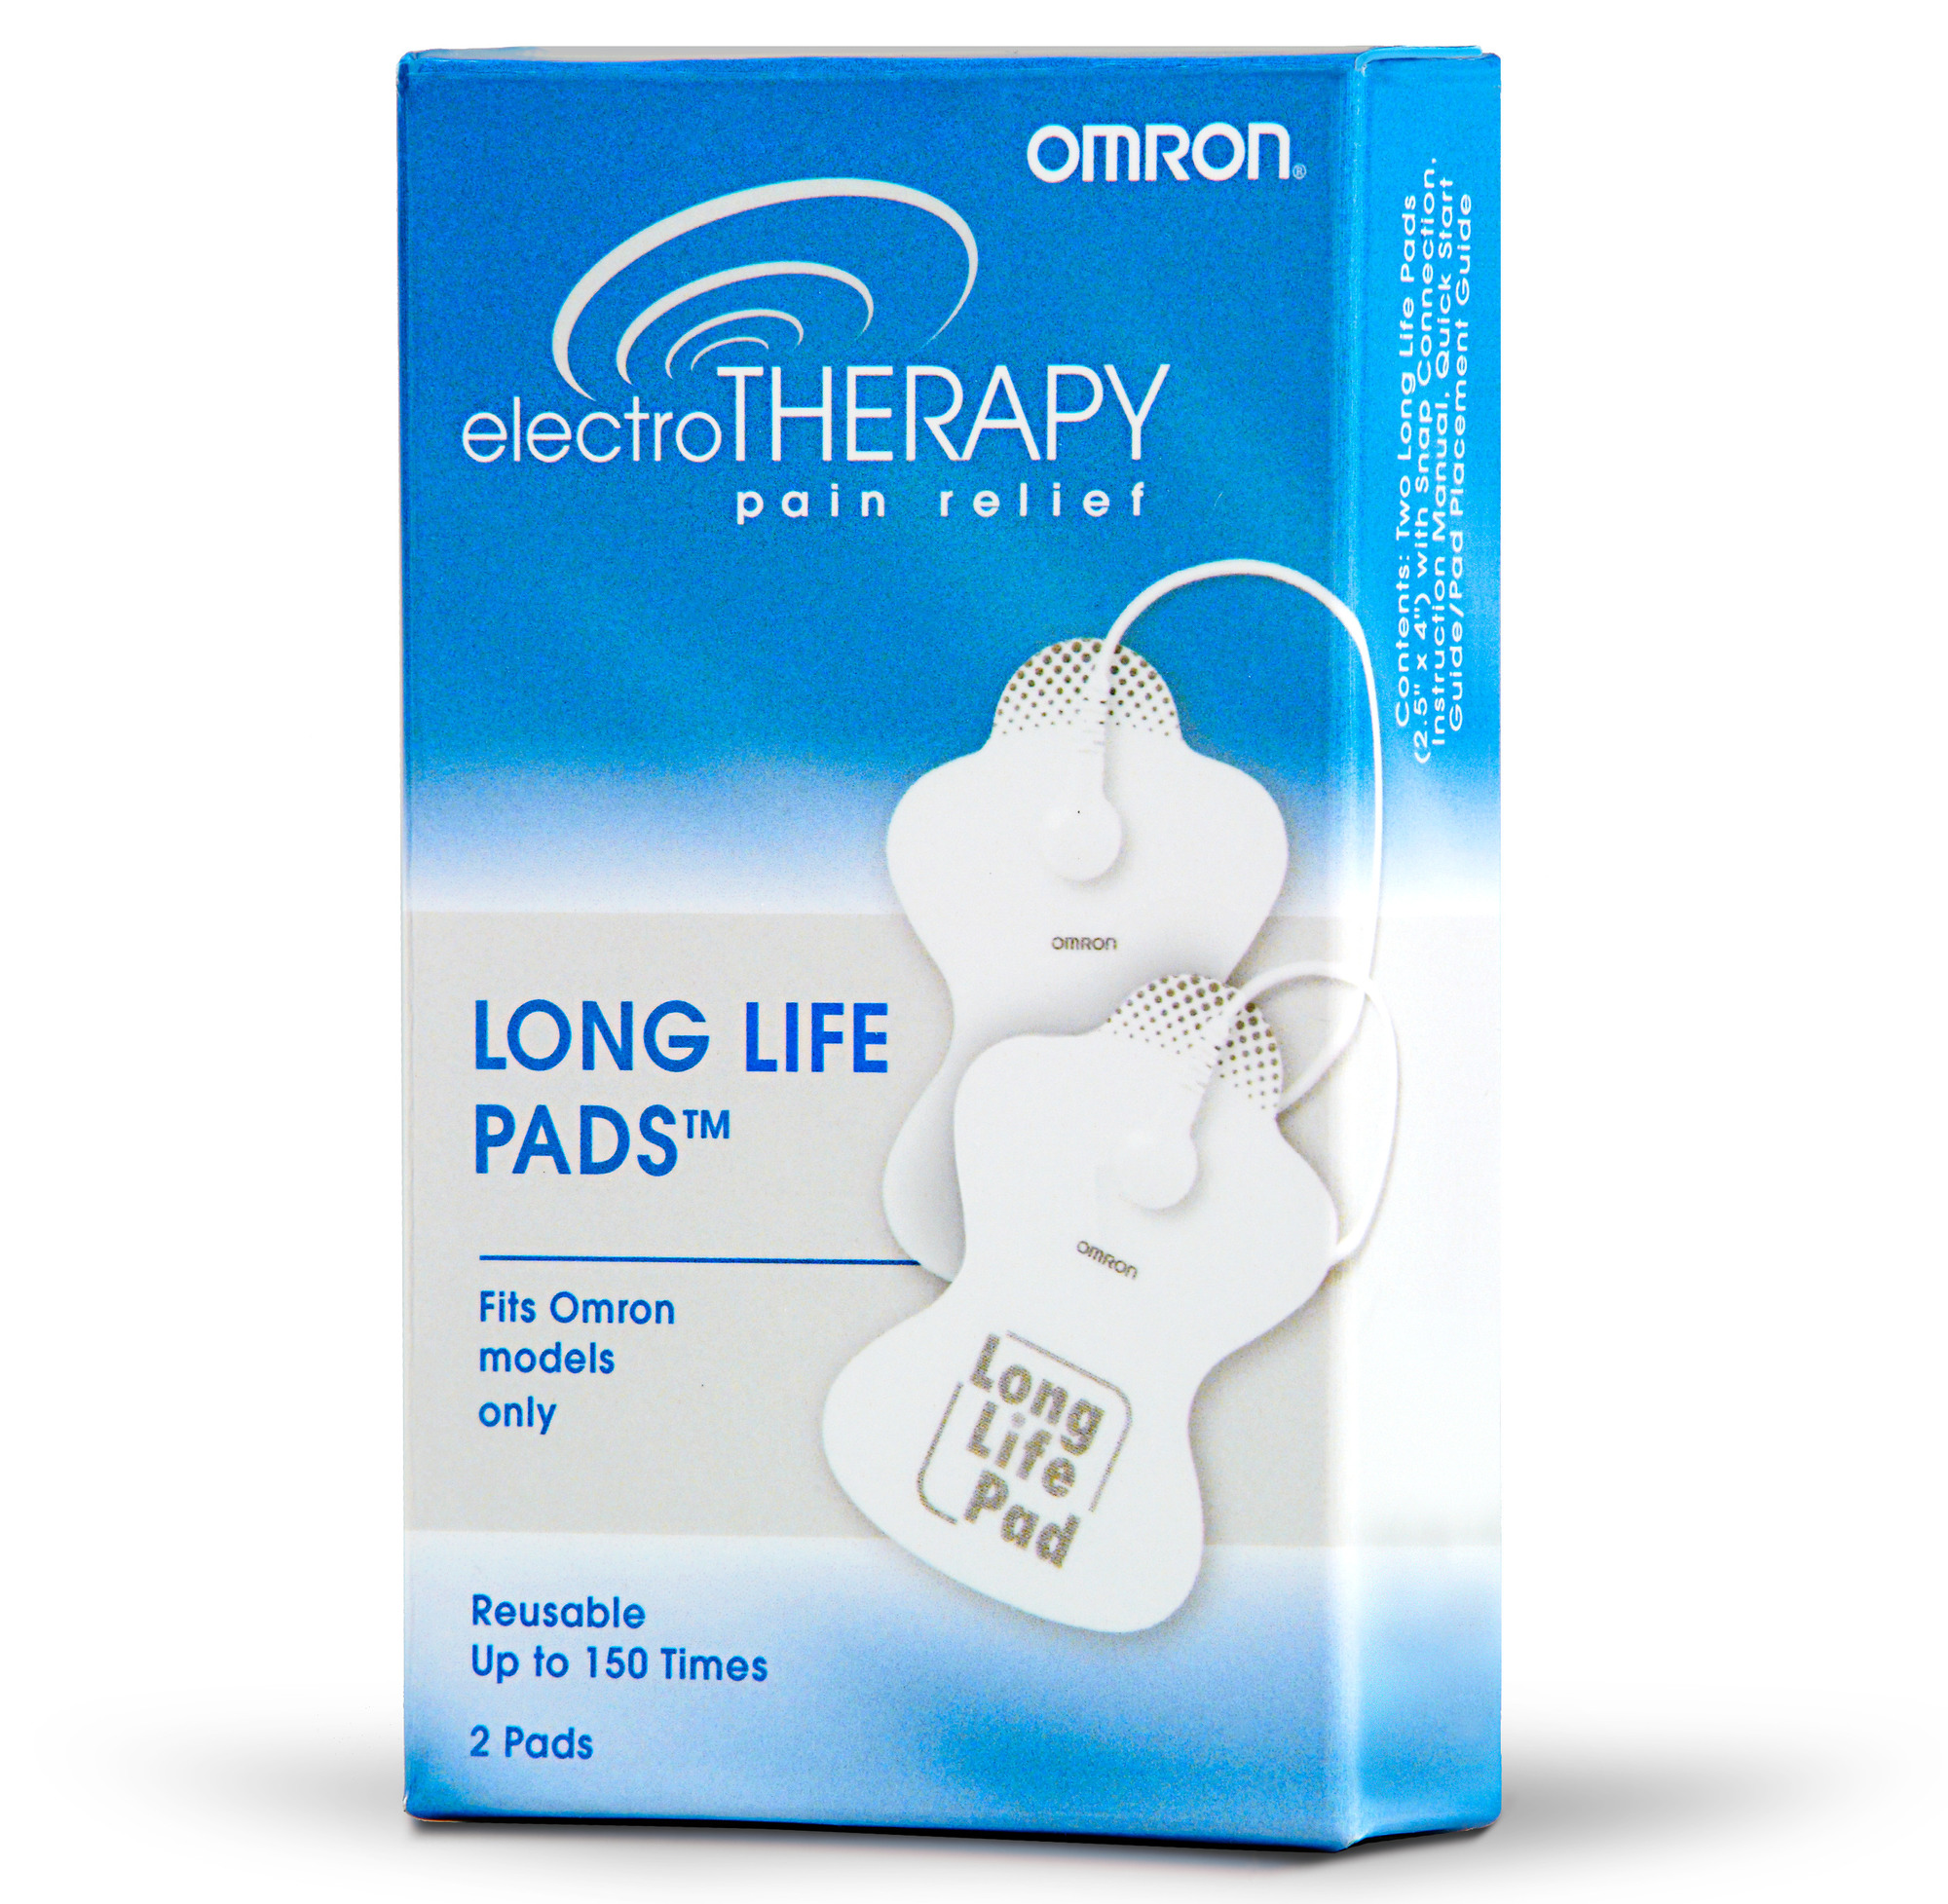 omron electrotherapy pain relief device manual